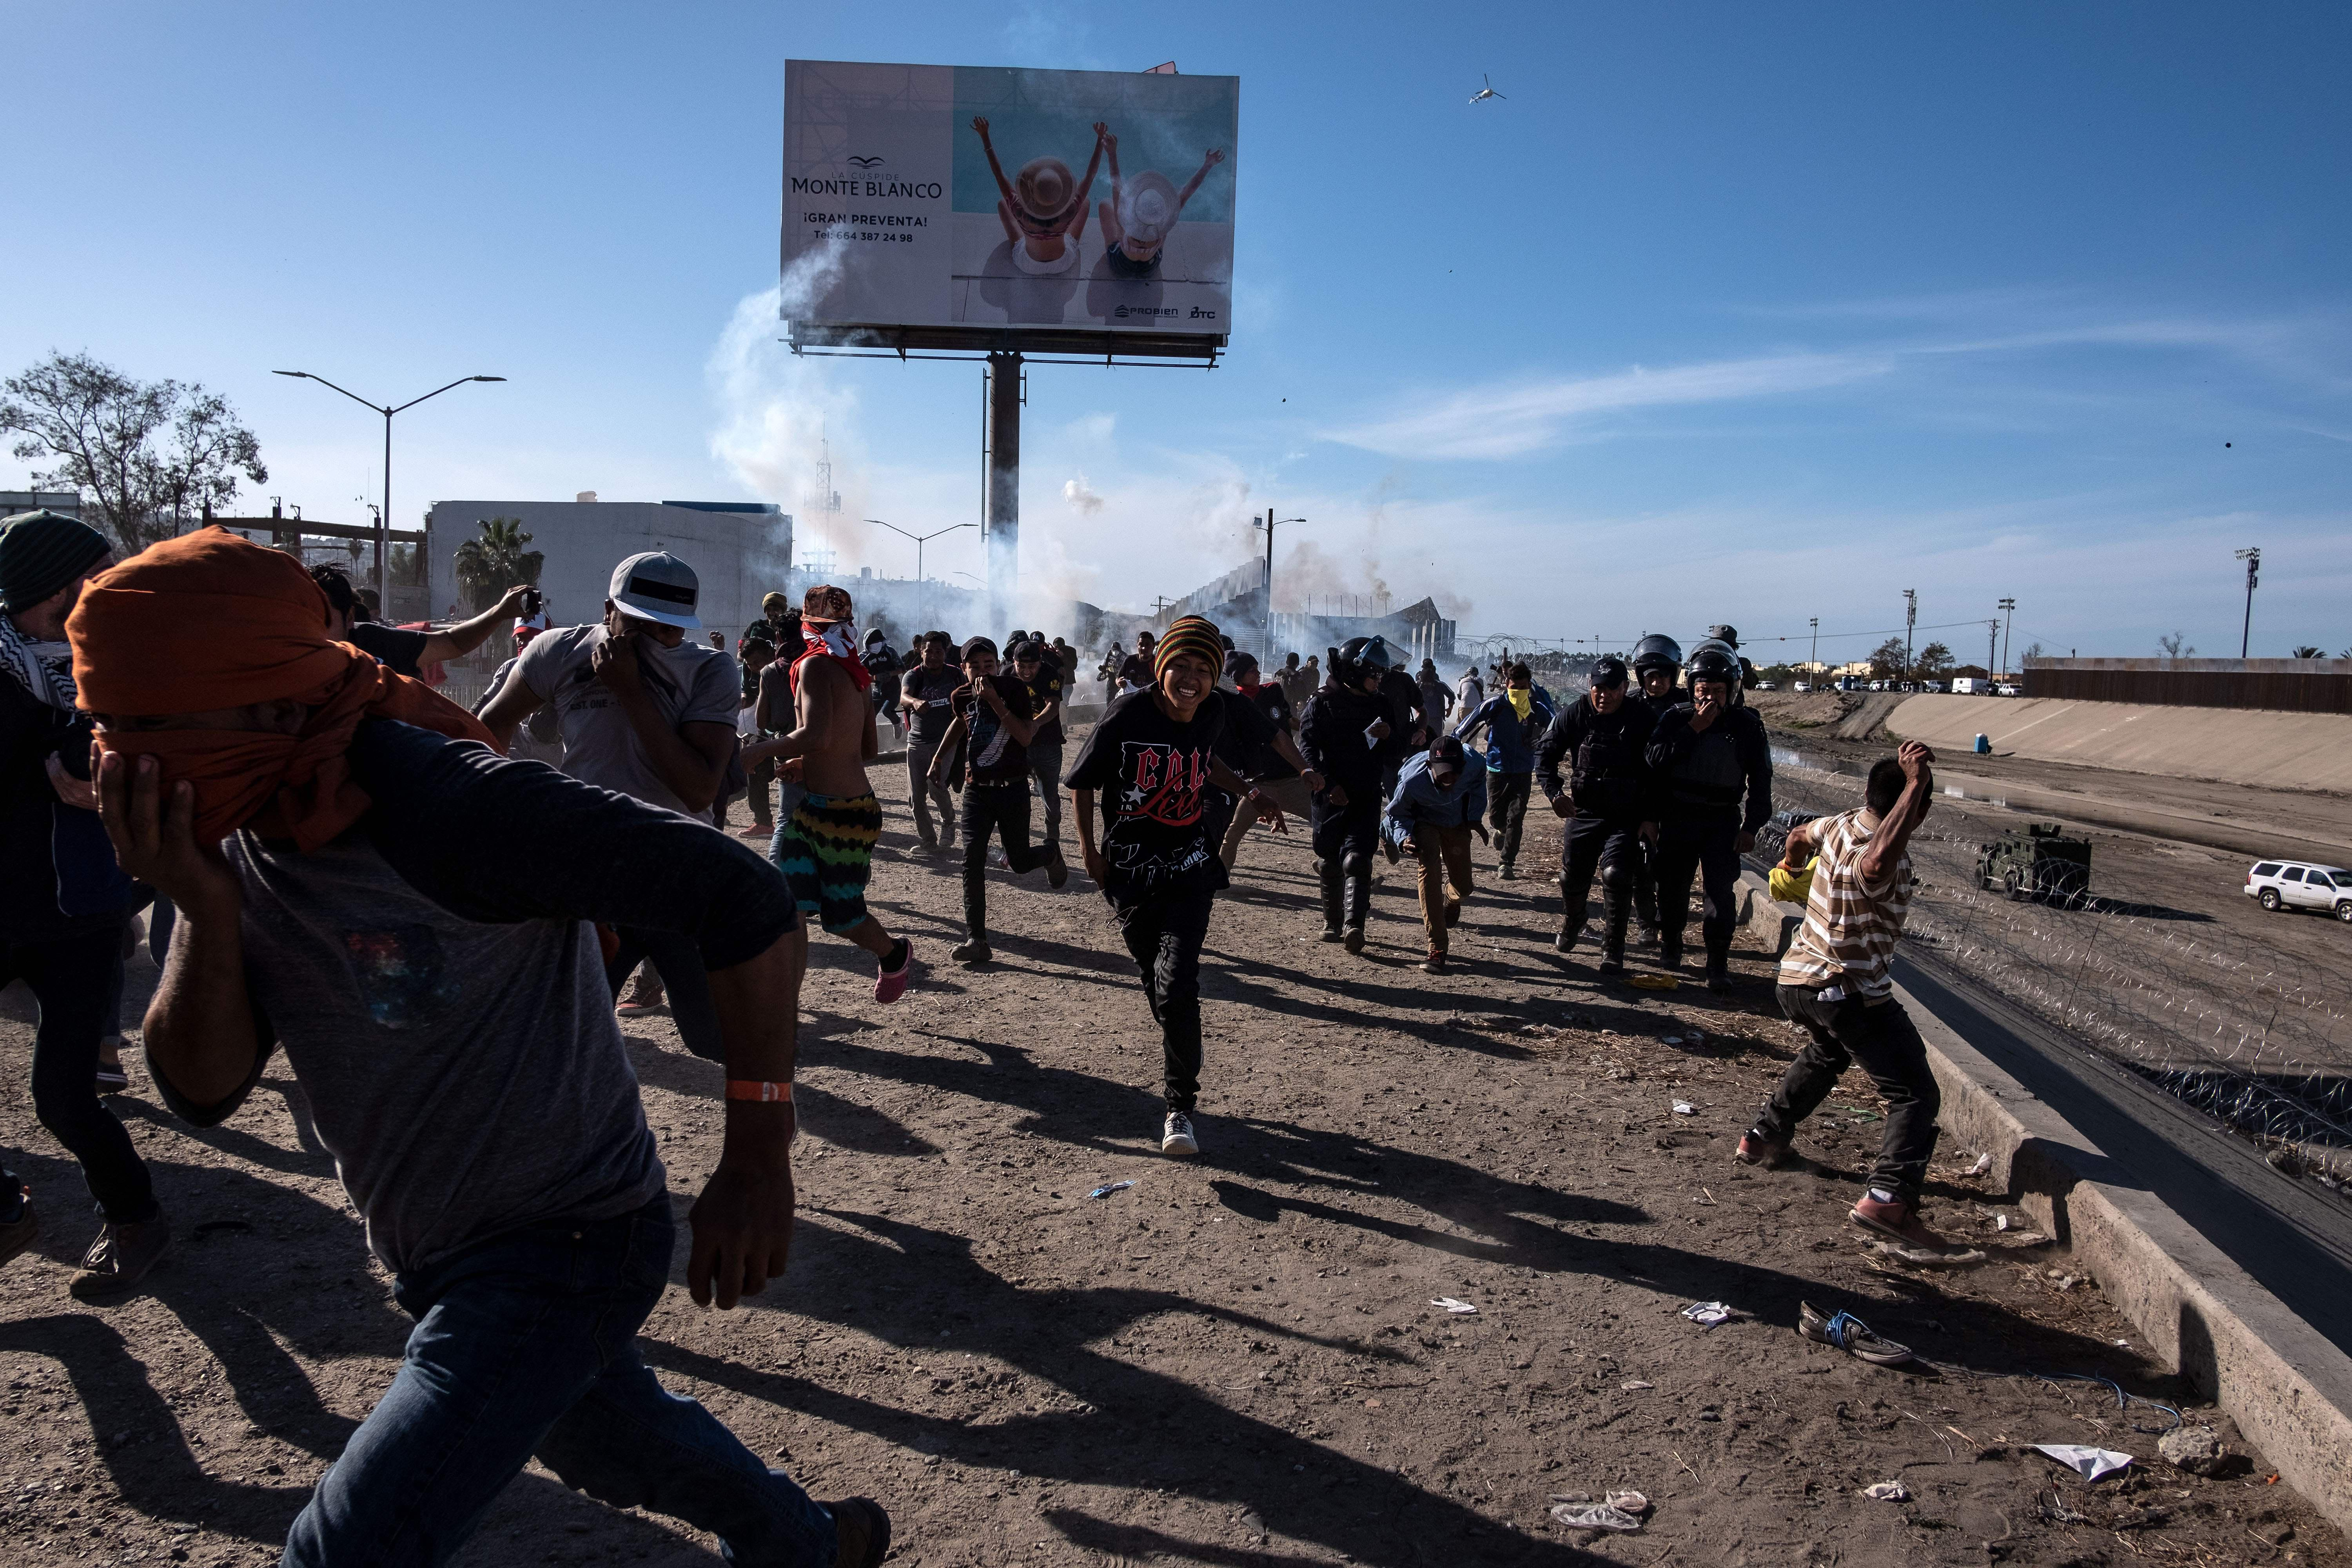 A crowd of migrants, many of them covering their mouths, flee from a cloud of gas behind them.